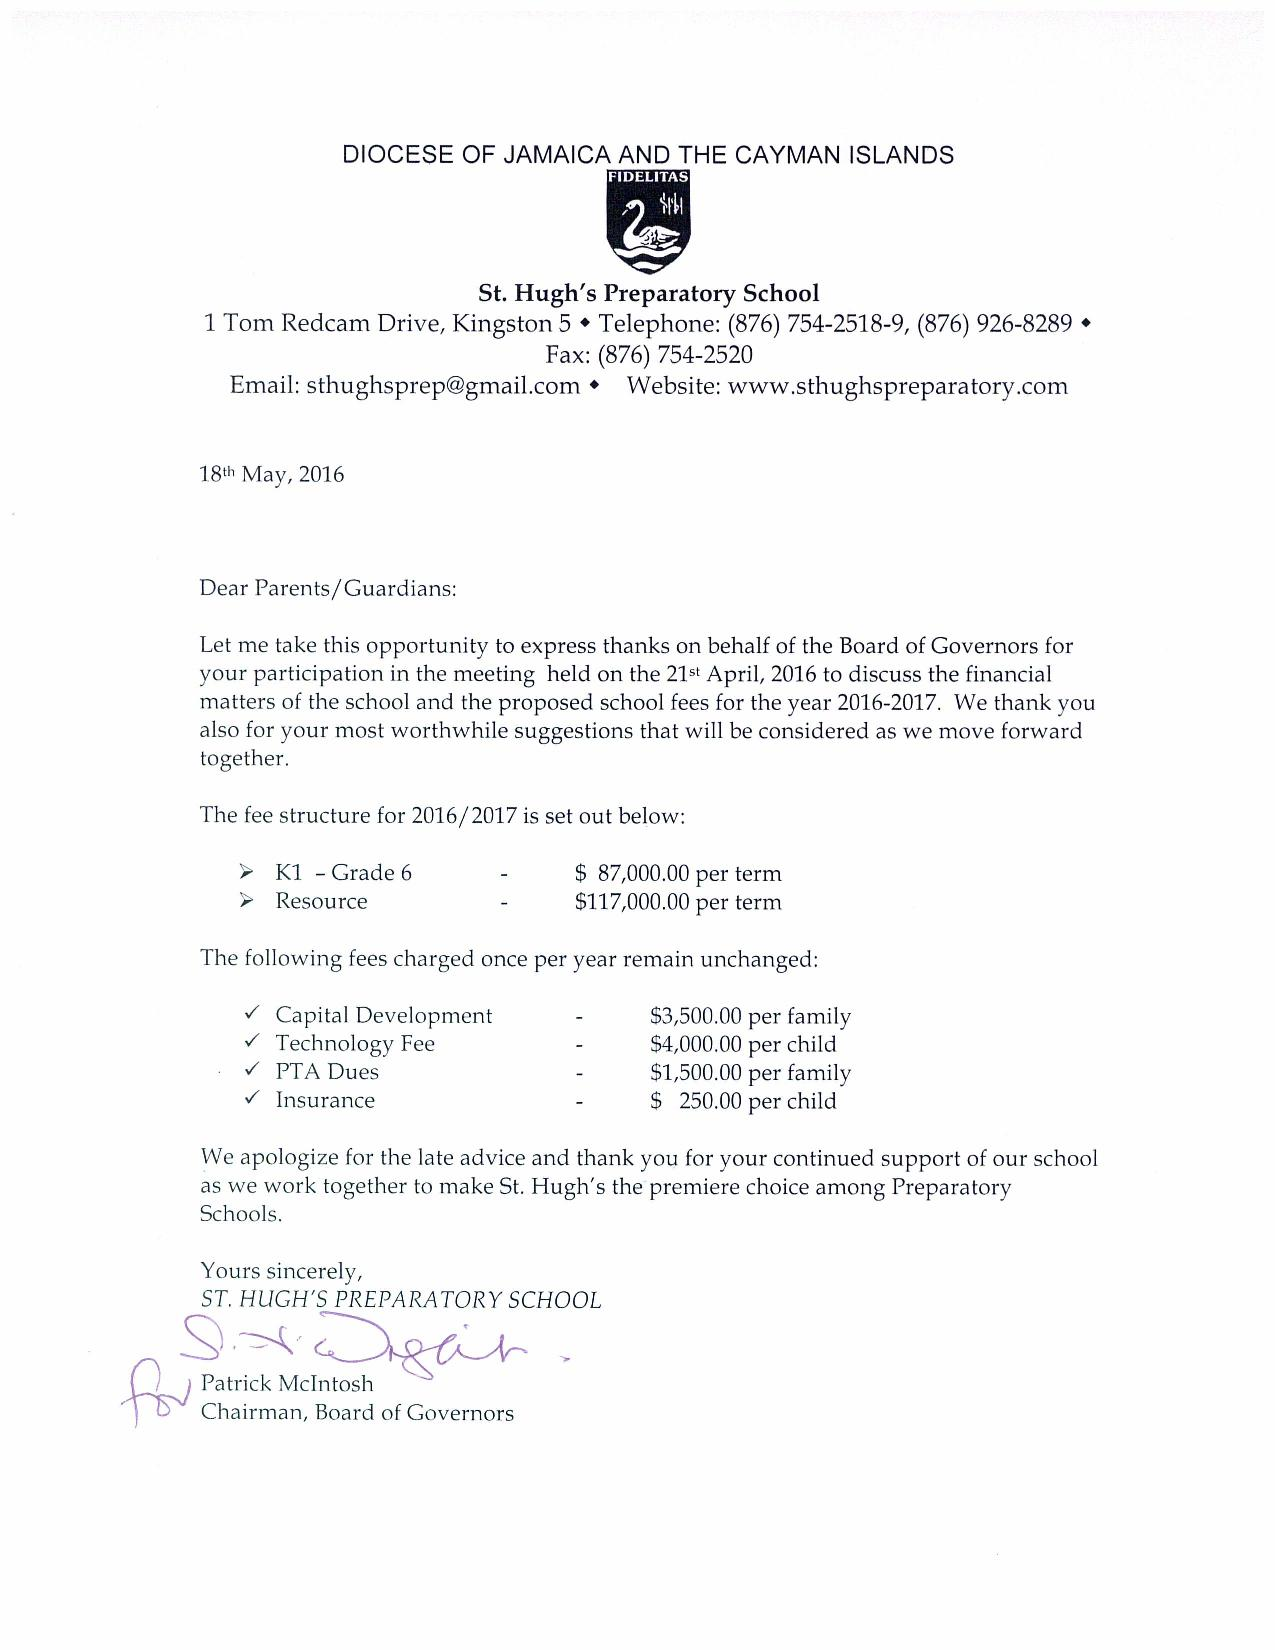 Letter To Parents School Fees 2016 17